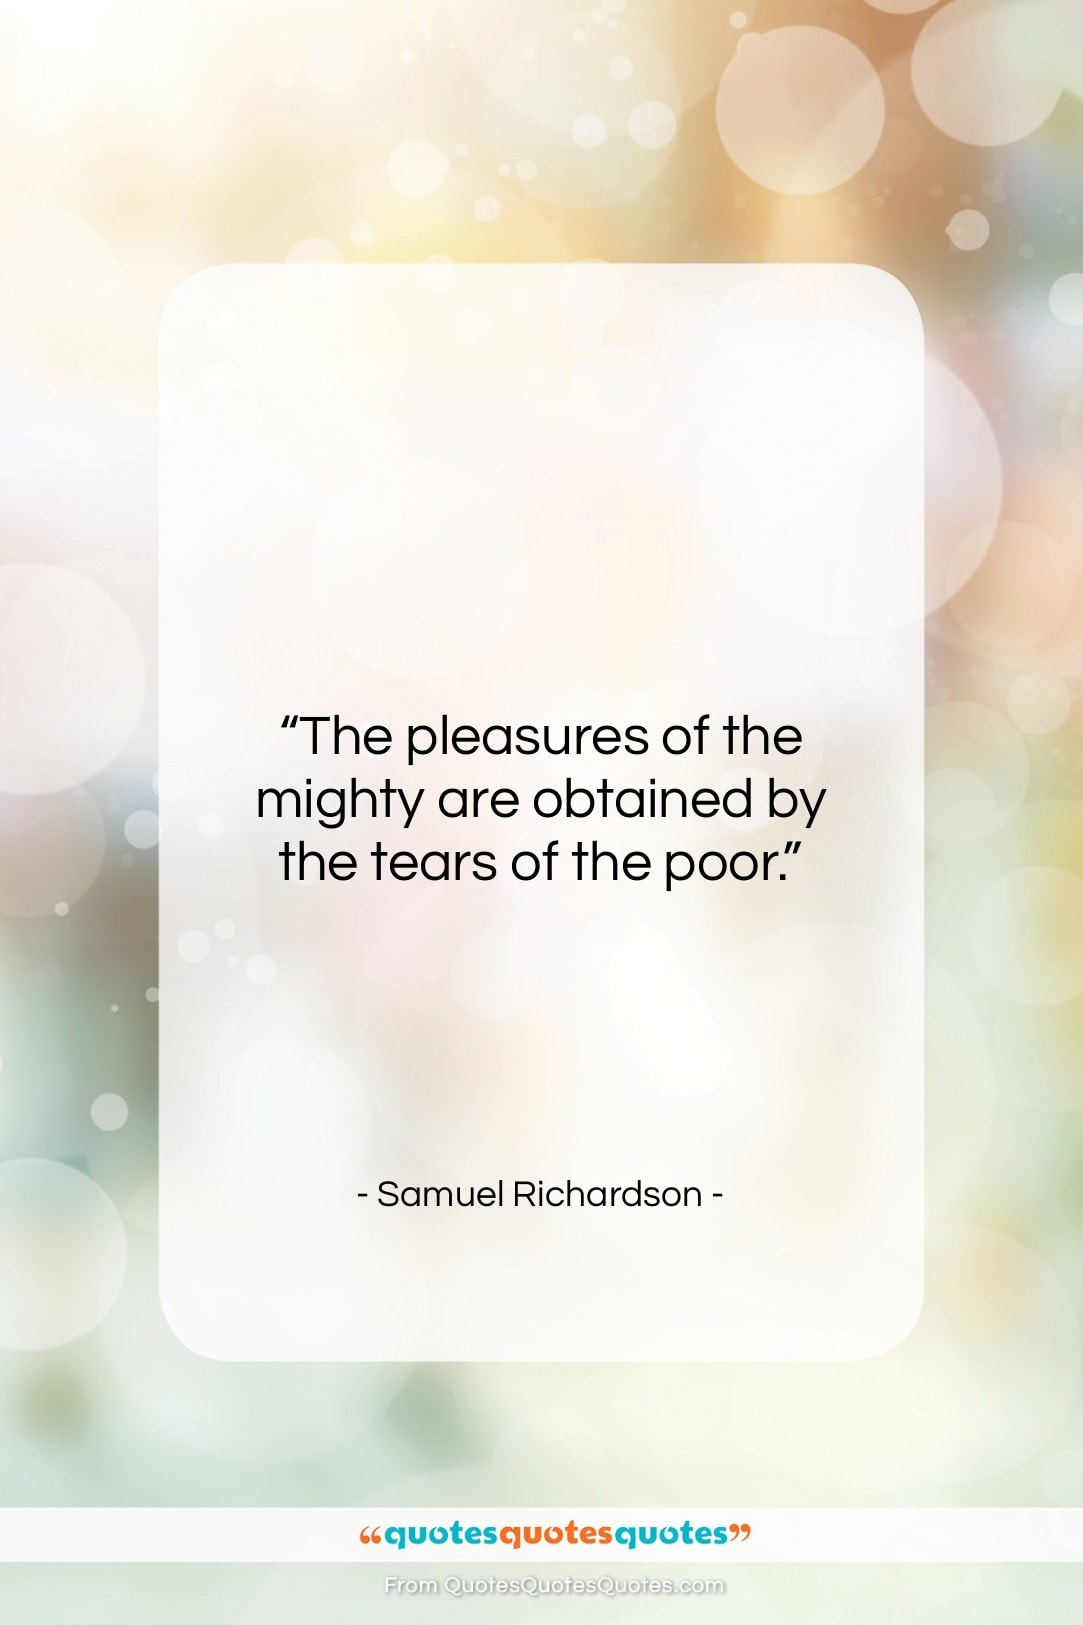 """Samuel Richardson quote: """"The pleasures of the mighty are obtained…""""- at QuotesQuotesQuotes.com"""